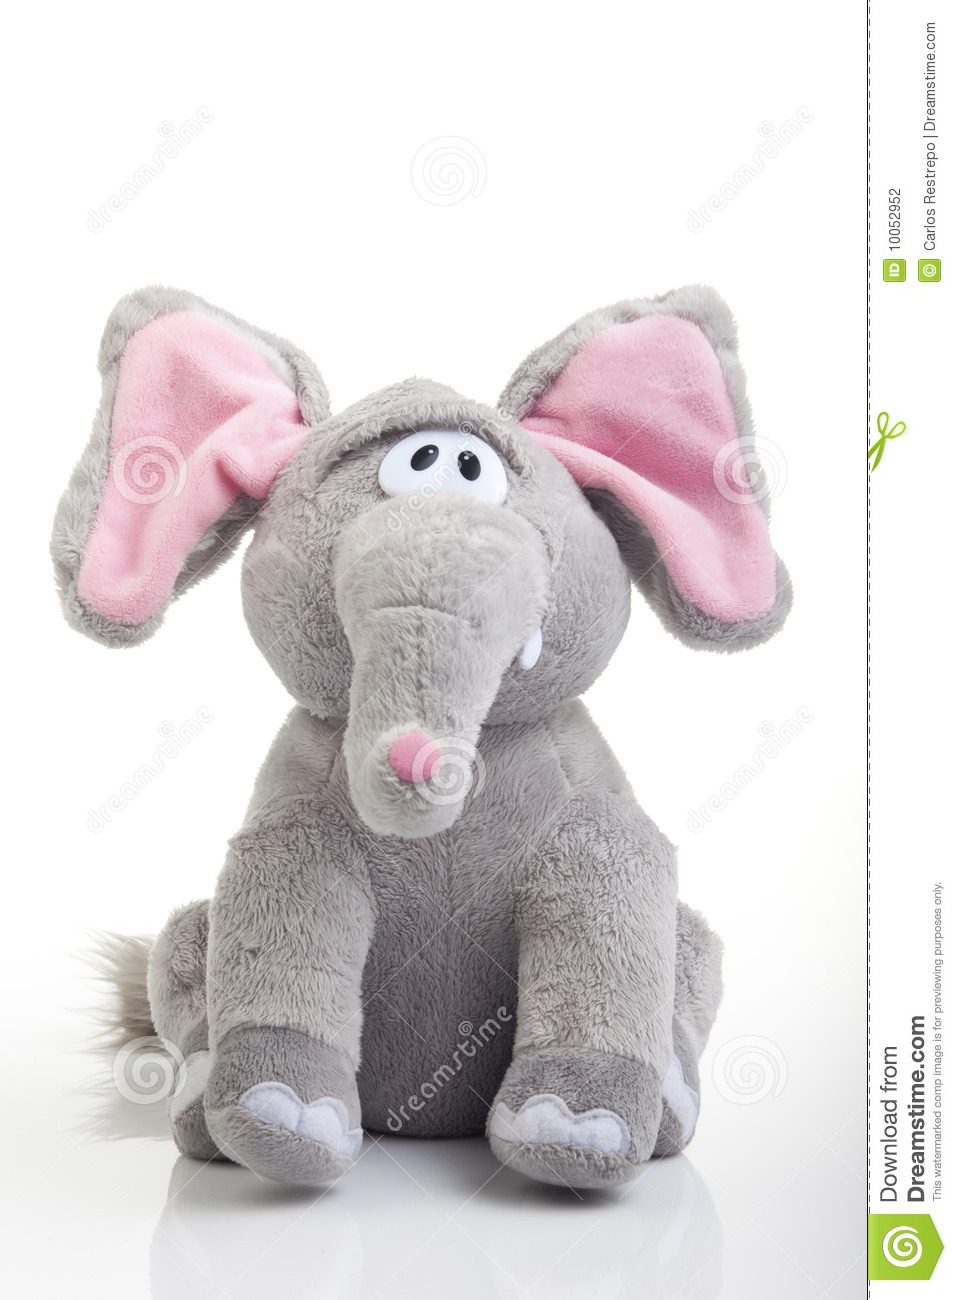 Toys For Elephant : Elephant toy stock photography image